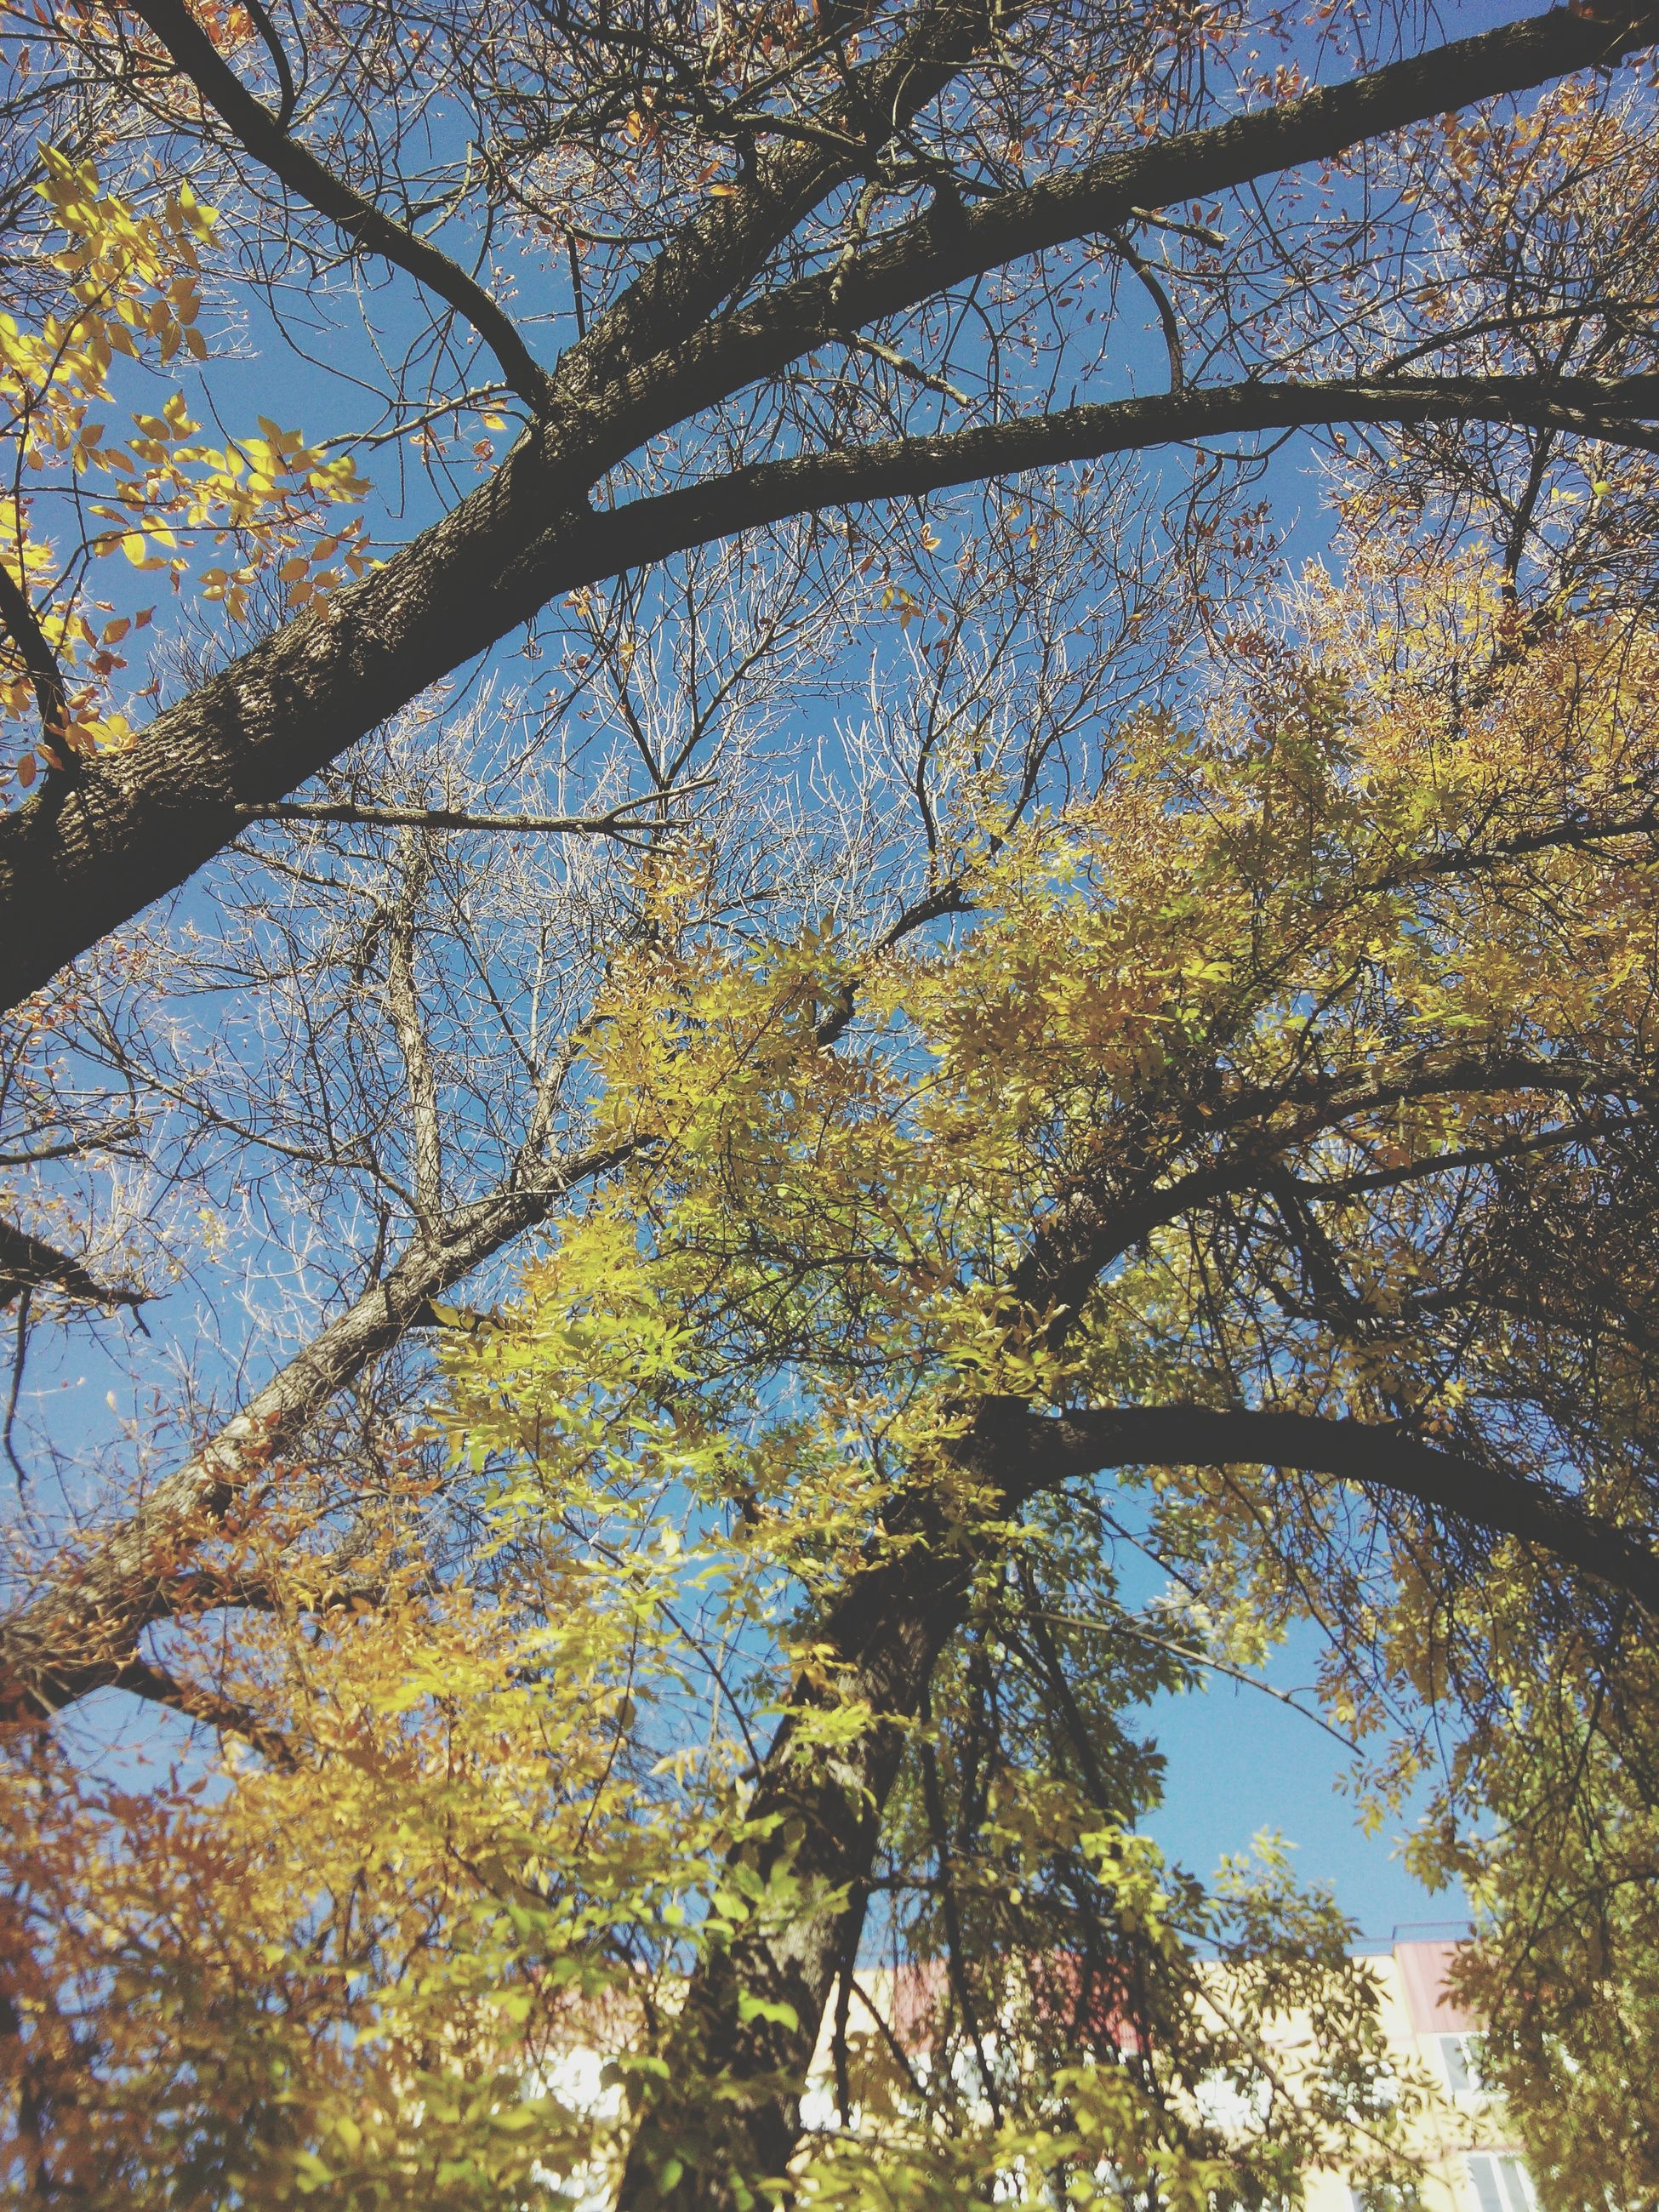 tree, low angle view, branch, growth, nature, yellow, sky, beauty in nature, tranquility, autumn, leaf, day, tree trunk, outdoors, no people, sunlight, clear sky, green color, change, scenics